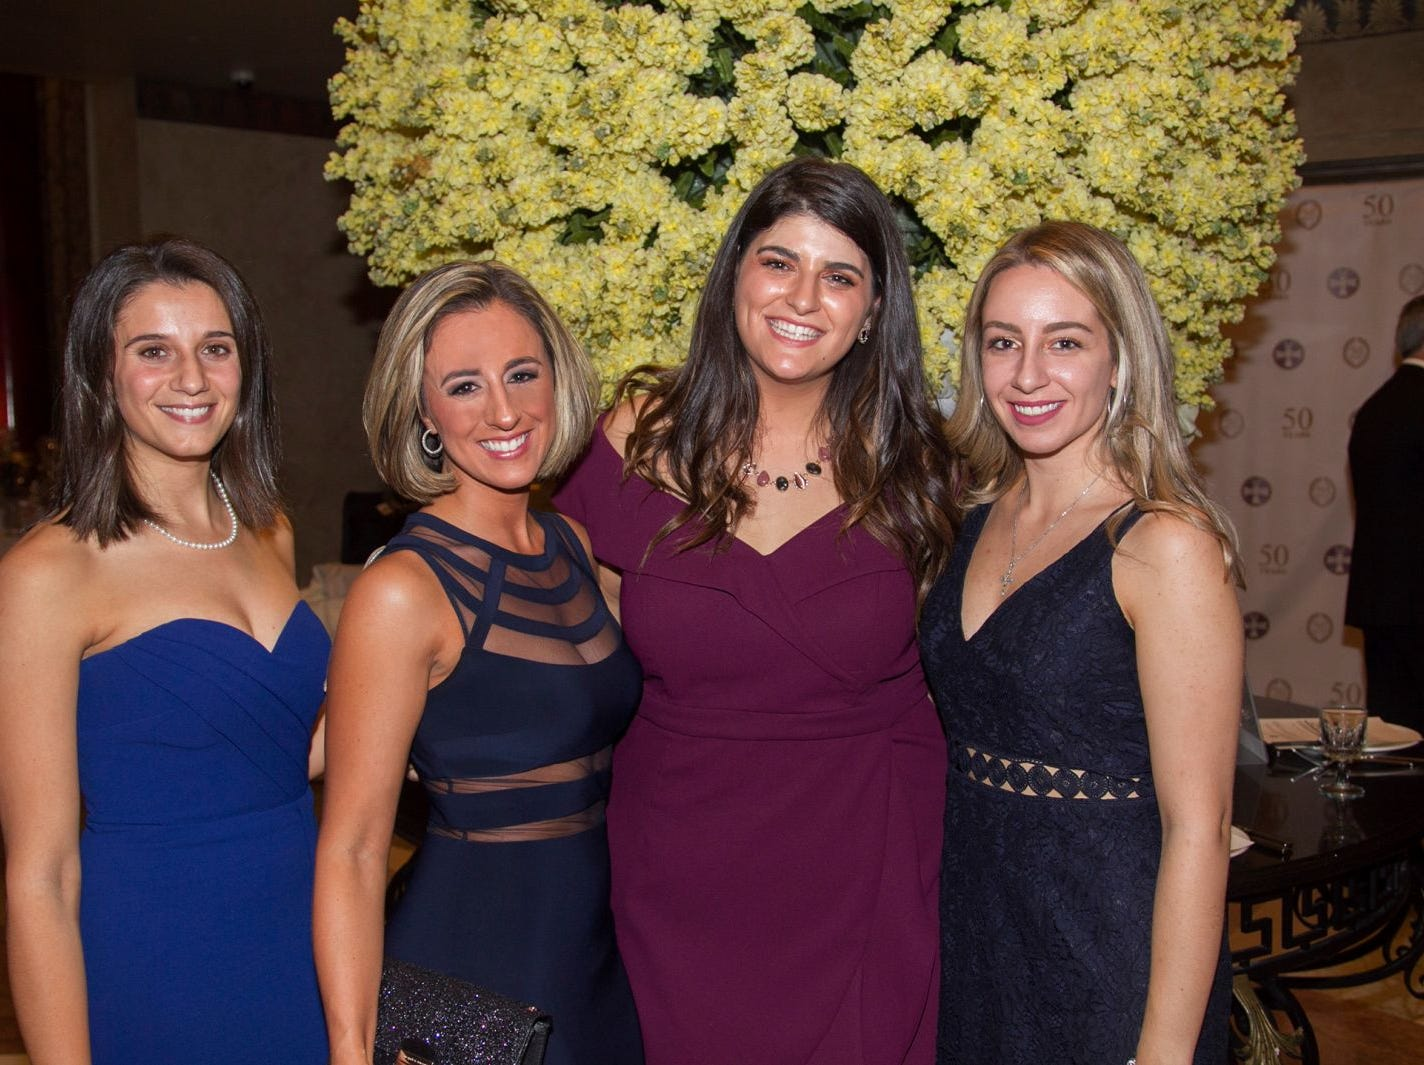 Christine Puleo, Mara Karidas, Stephanie Zavolas, Ariana Galitsis. Saint John the Theologian 50th Anniversary gala Dinner at The Venetian in Garfield. 10/04/2018